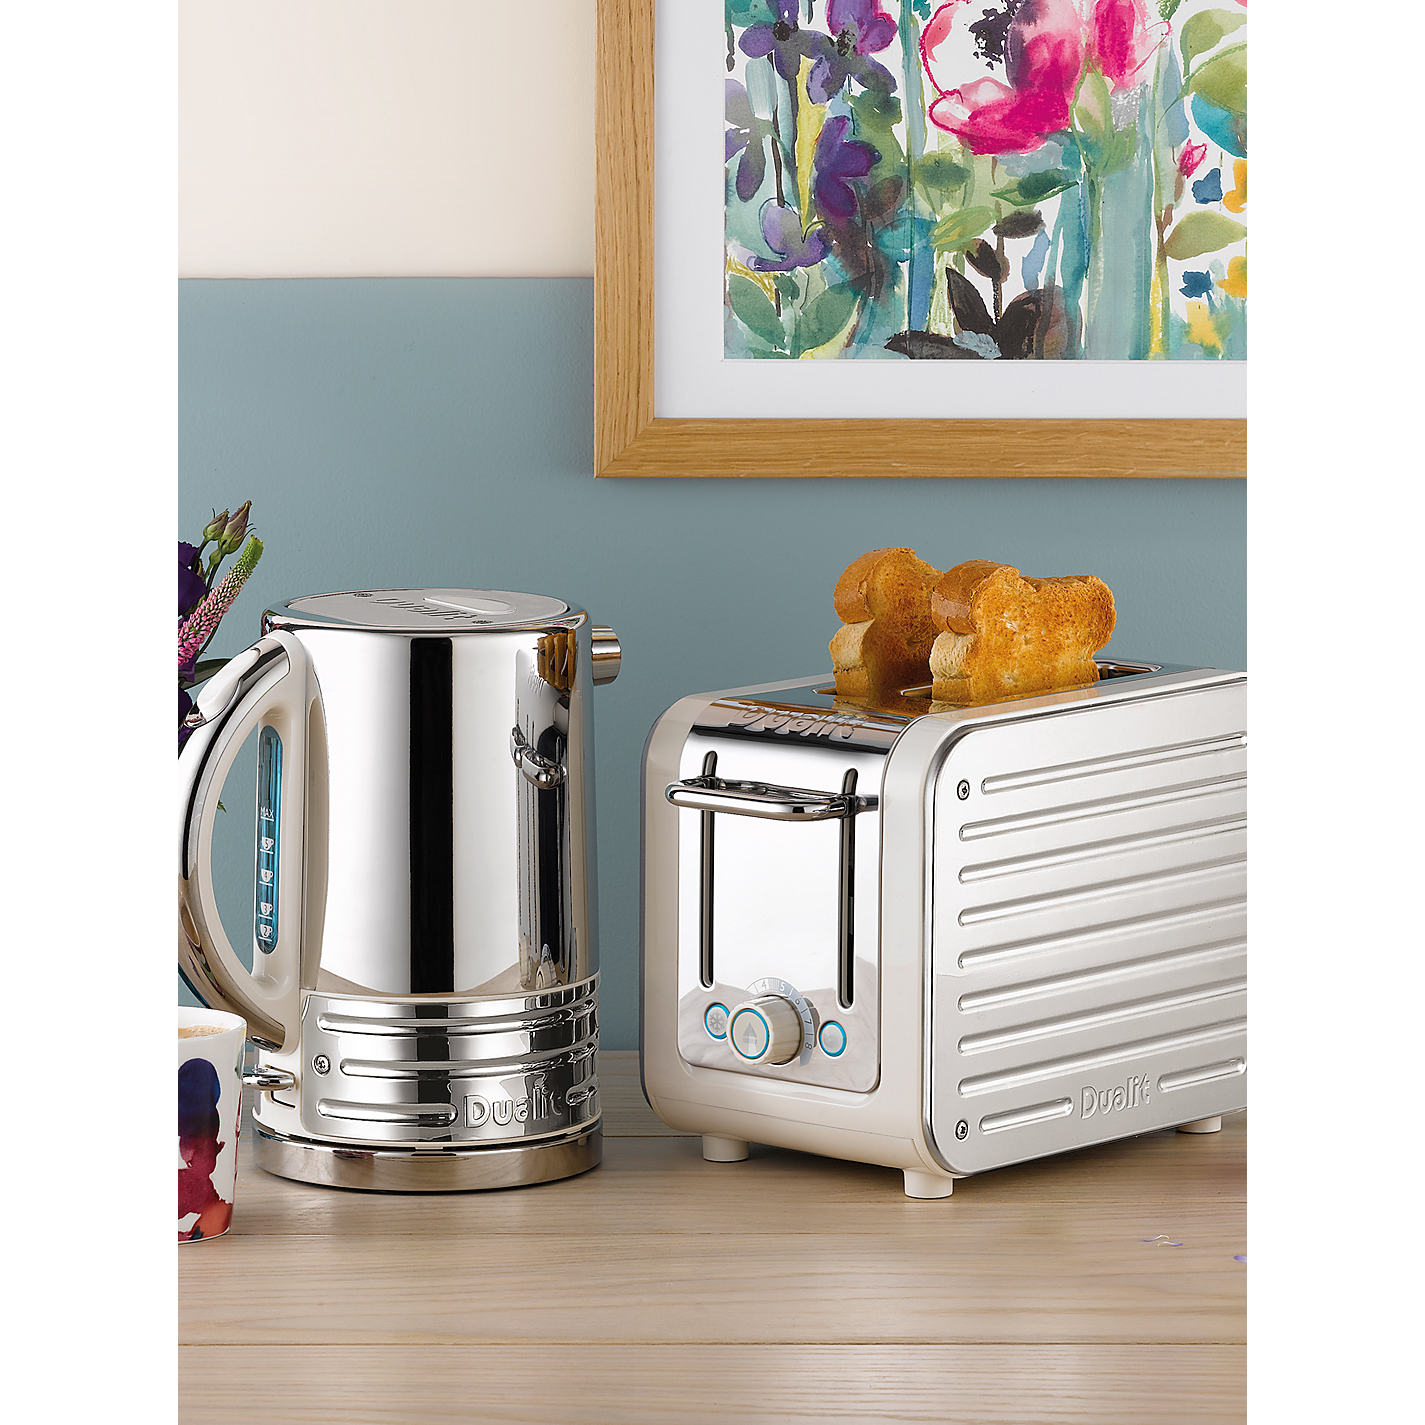 dp plastic electronic amazon co browning uk control toaster slice home swan white toasters kitchen